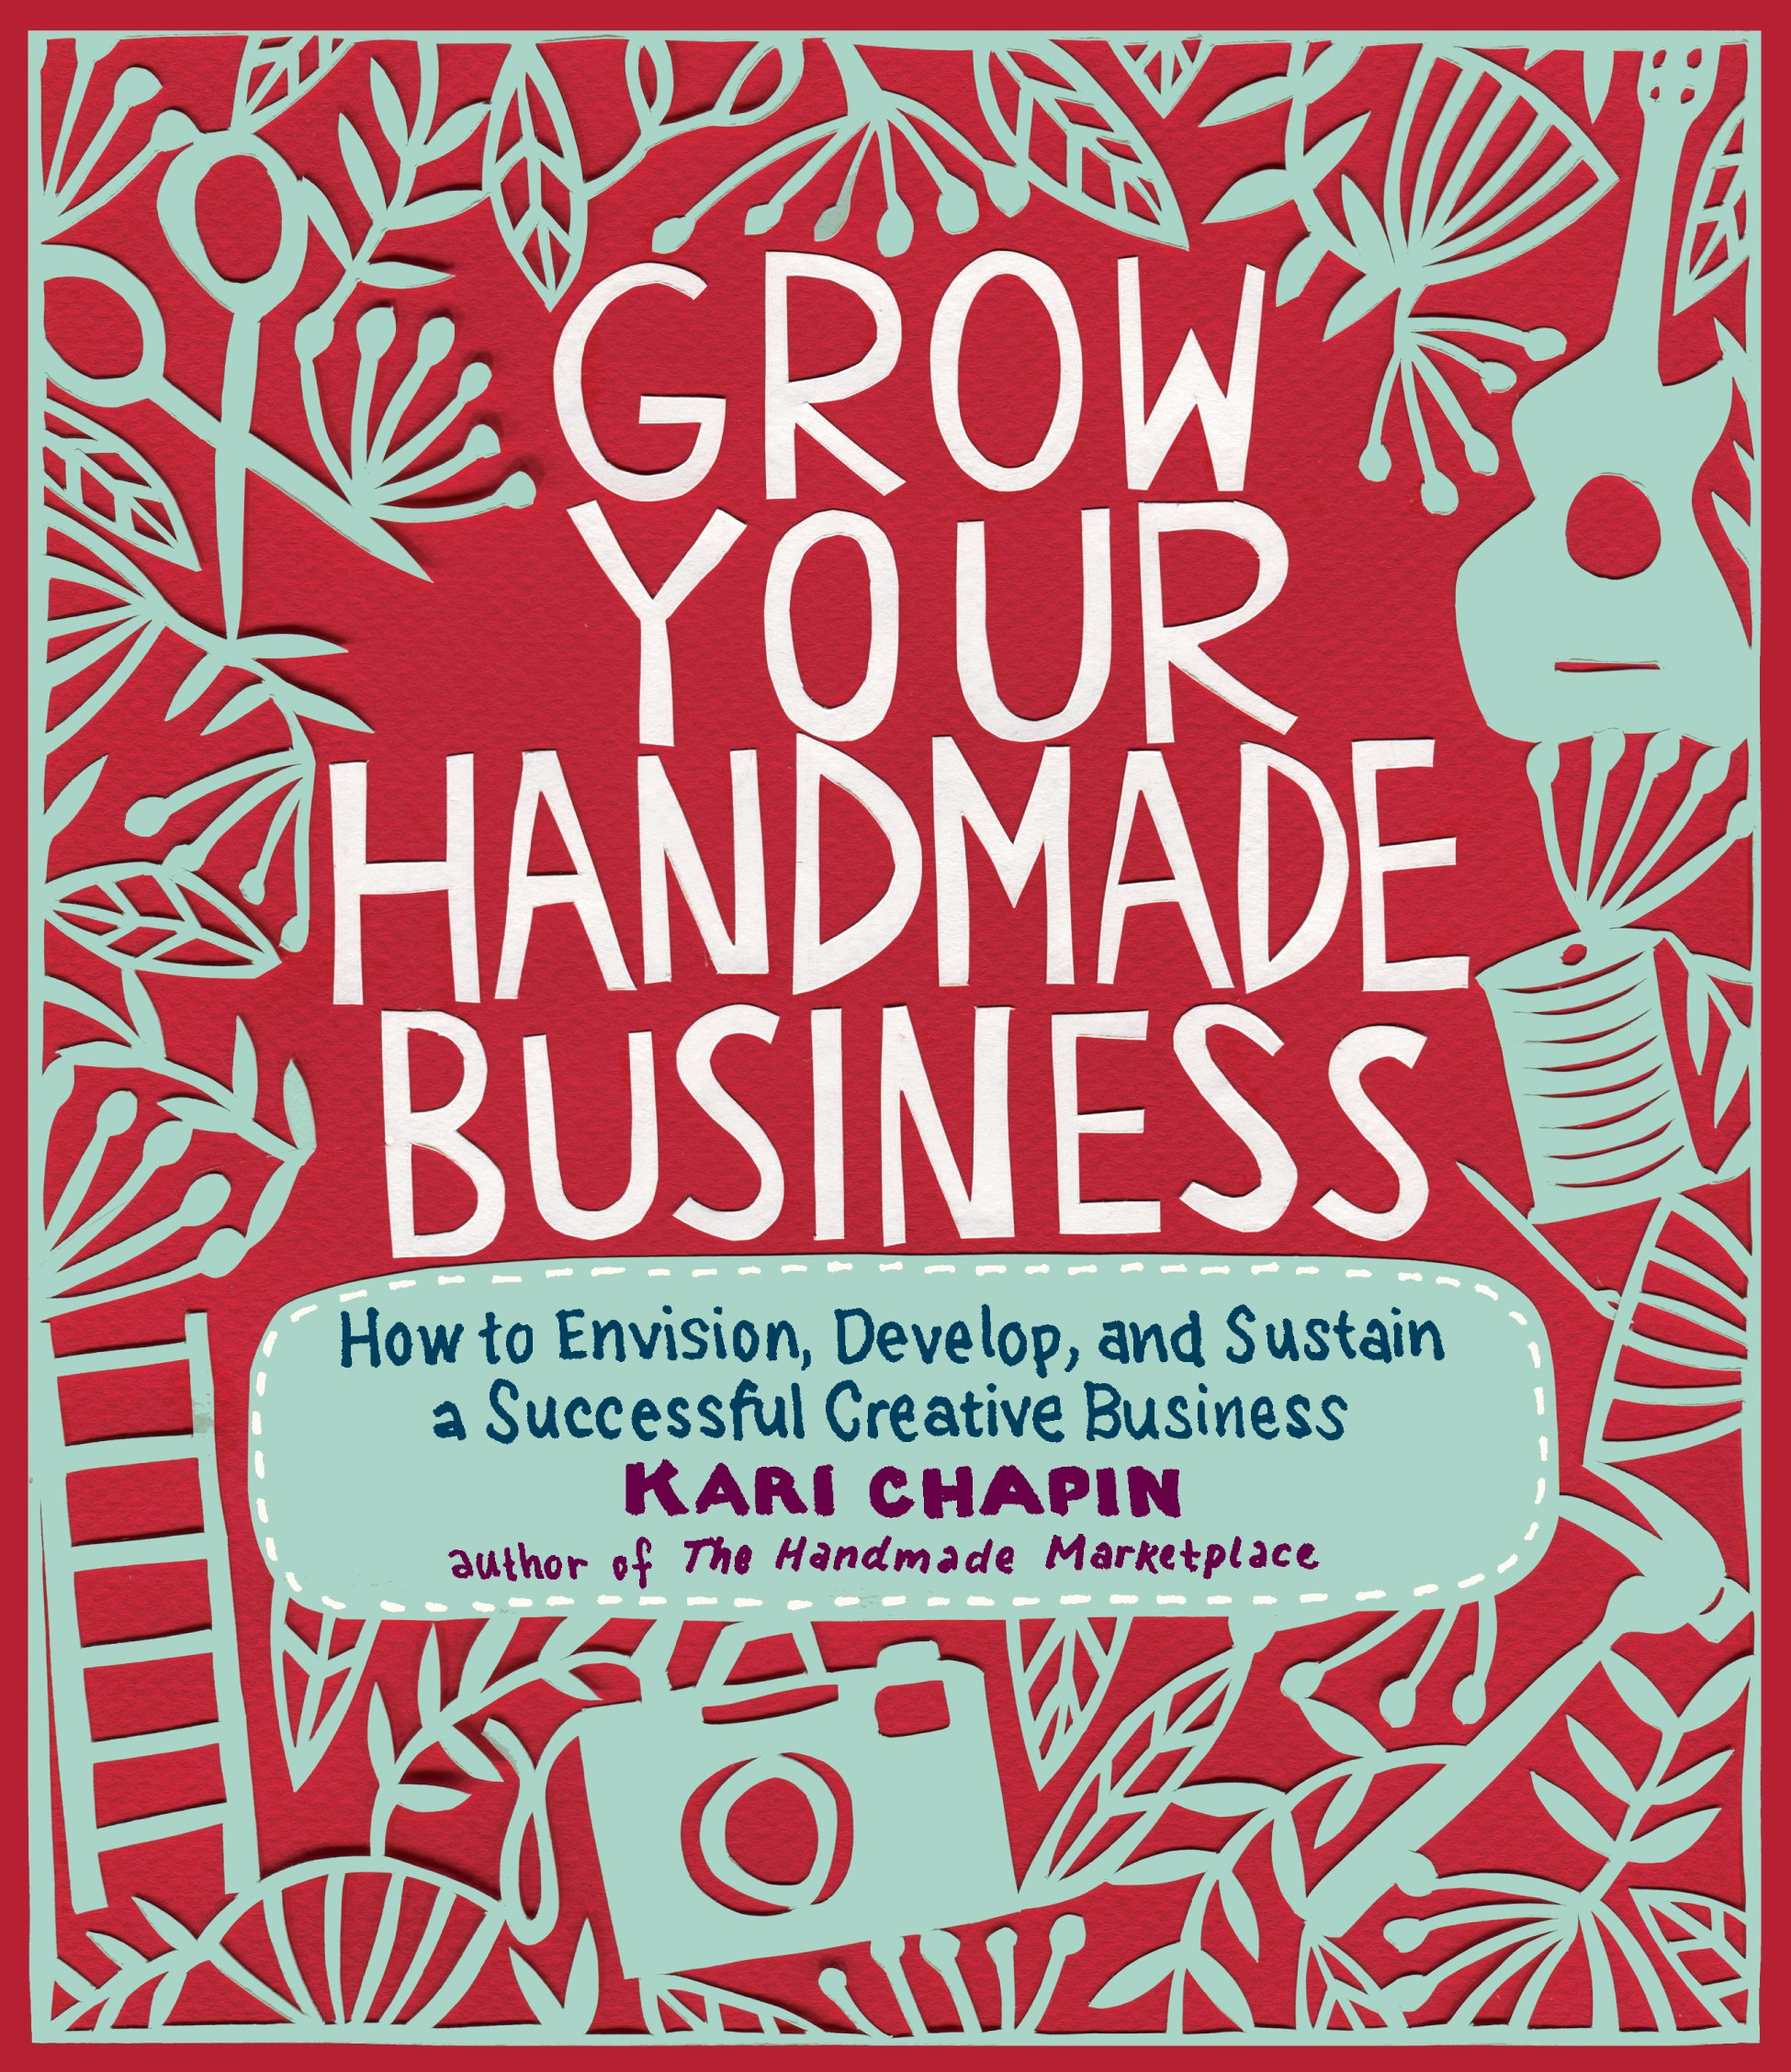 Grow Your Handmade Business: How to Envision, Develop, and Sustain a ...